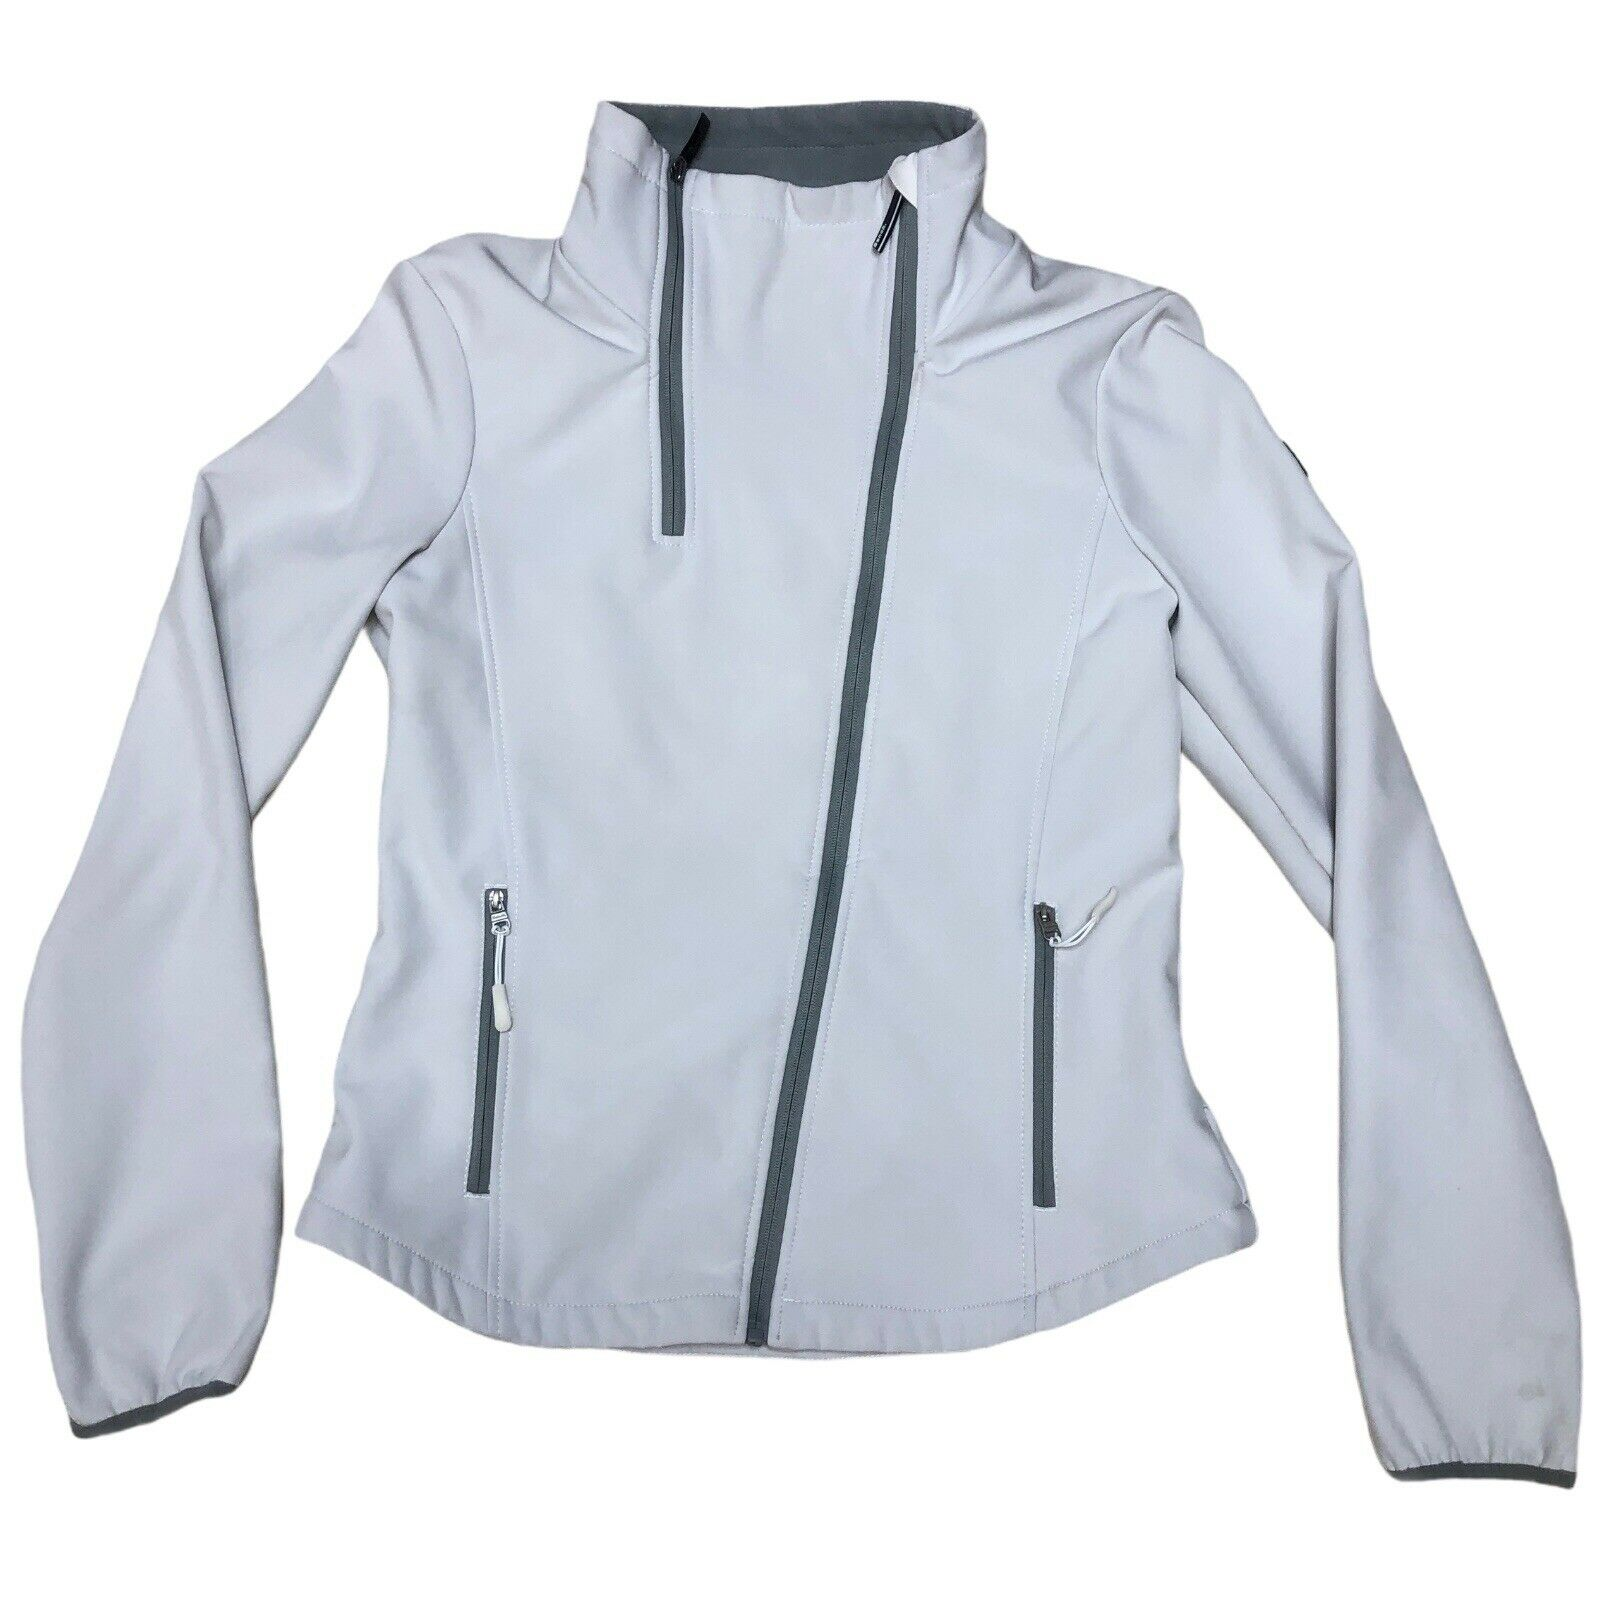 Bench Softshell Offwhite Ivory Jacket Fleece Lined Windproof Stretch Zip Large